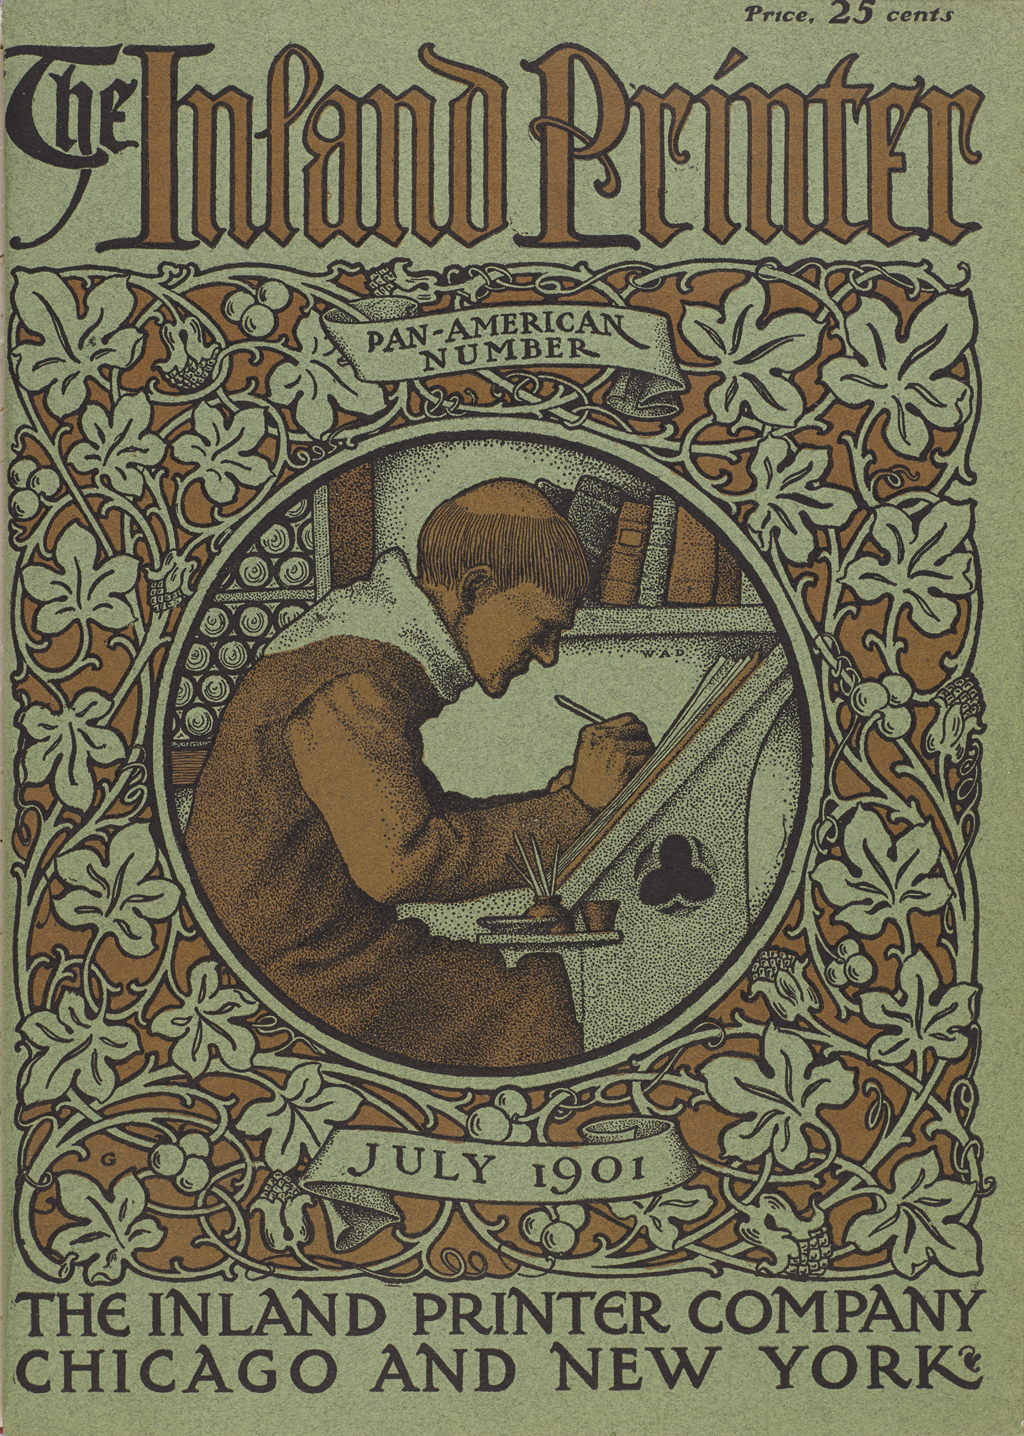 Cover of The Inland Printer (July 1901). Illustration by W.A. Dwiggins; lettering and decorative border by Frederic W. Goudy.